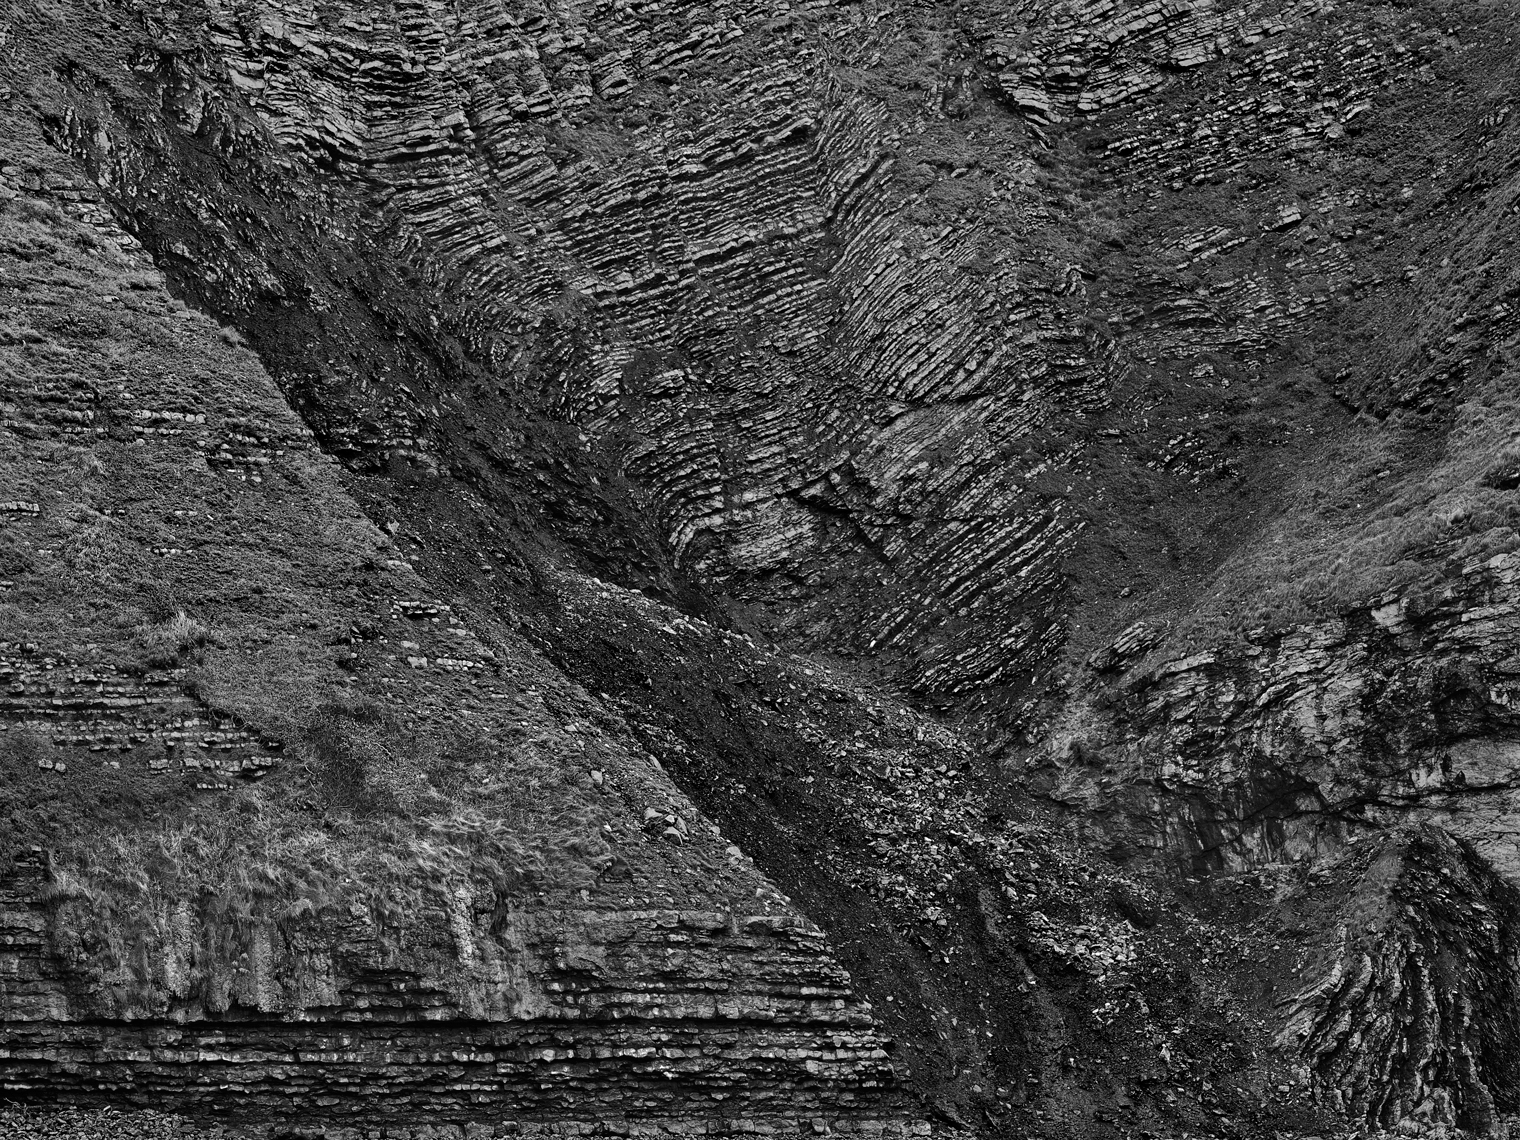 Jon Wyatt Photography - Folding in cliffs at Southerndown, South Wales